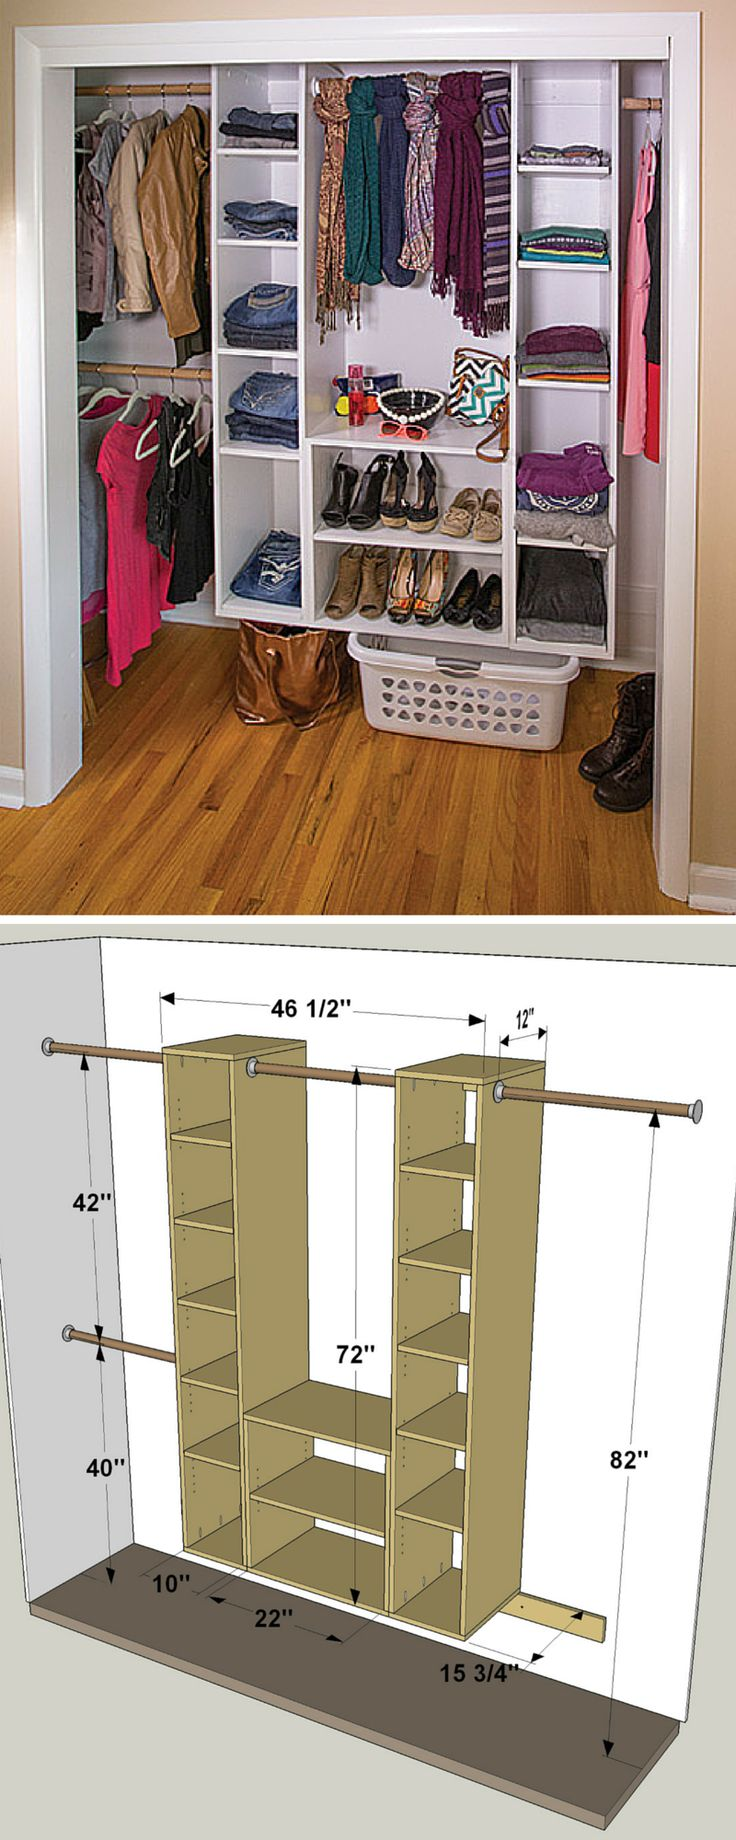 This organizer makes it easy to turn a chaotic closet into a clean, organized space. It's made up of a couple of basic pieces: Two towers with adjustable shelves, and wide cubby. You can build it as shown here or, because it's modular, arrange it in a different way to best suit your storage needs.